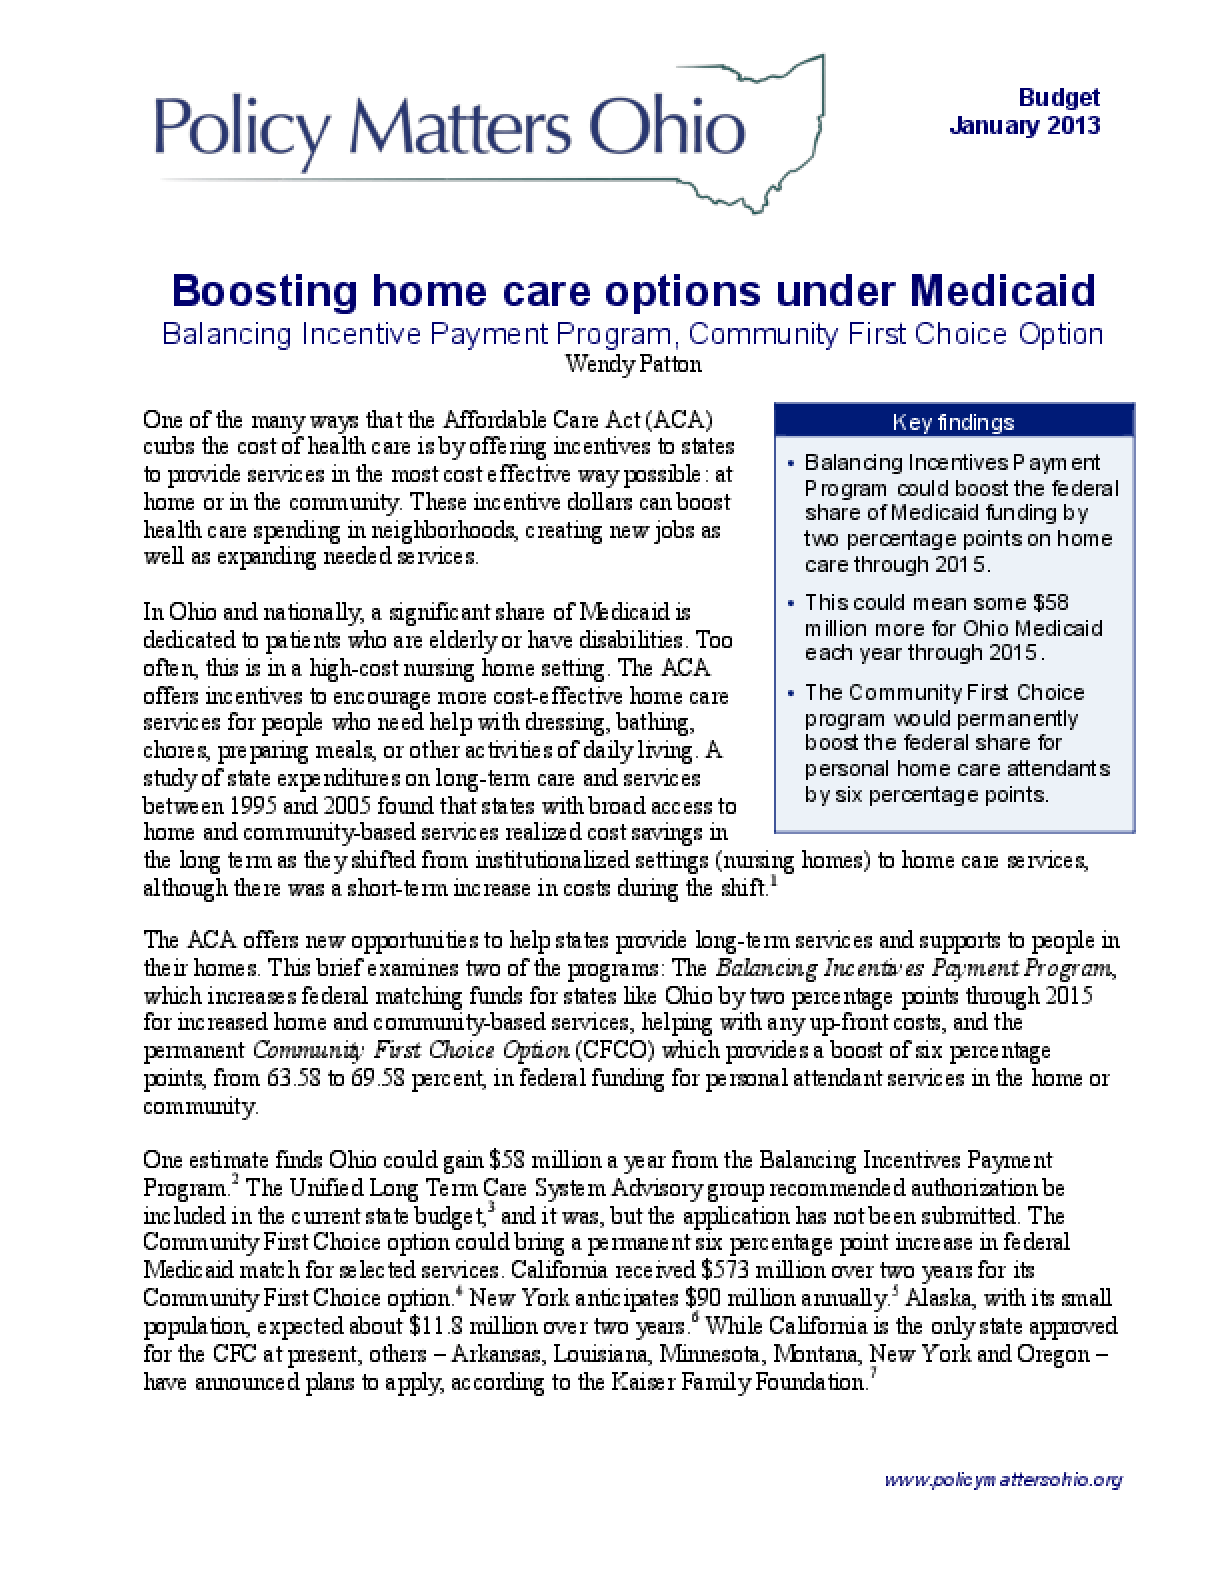 Boosting Home Care Options Under Medicaid: Balancing Incentive Payment Program, Community First Choice Option